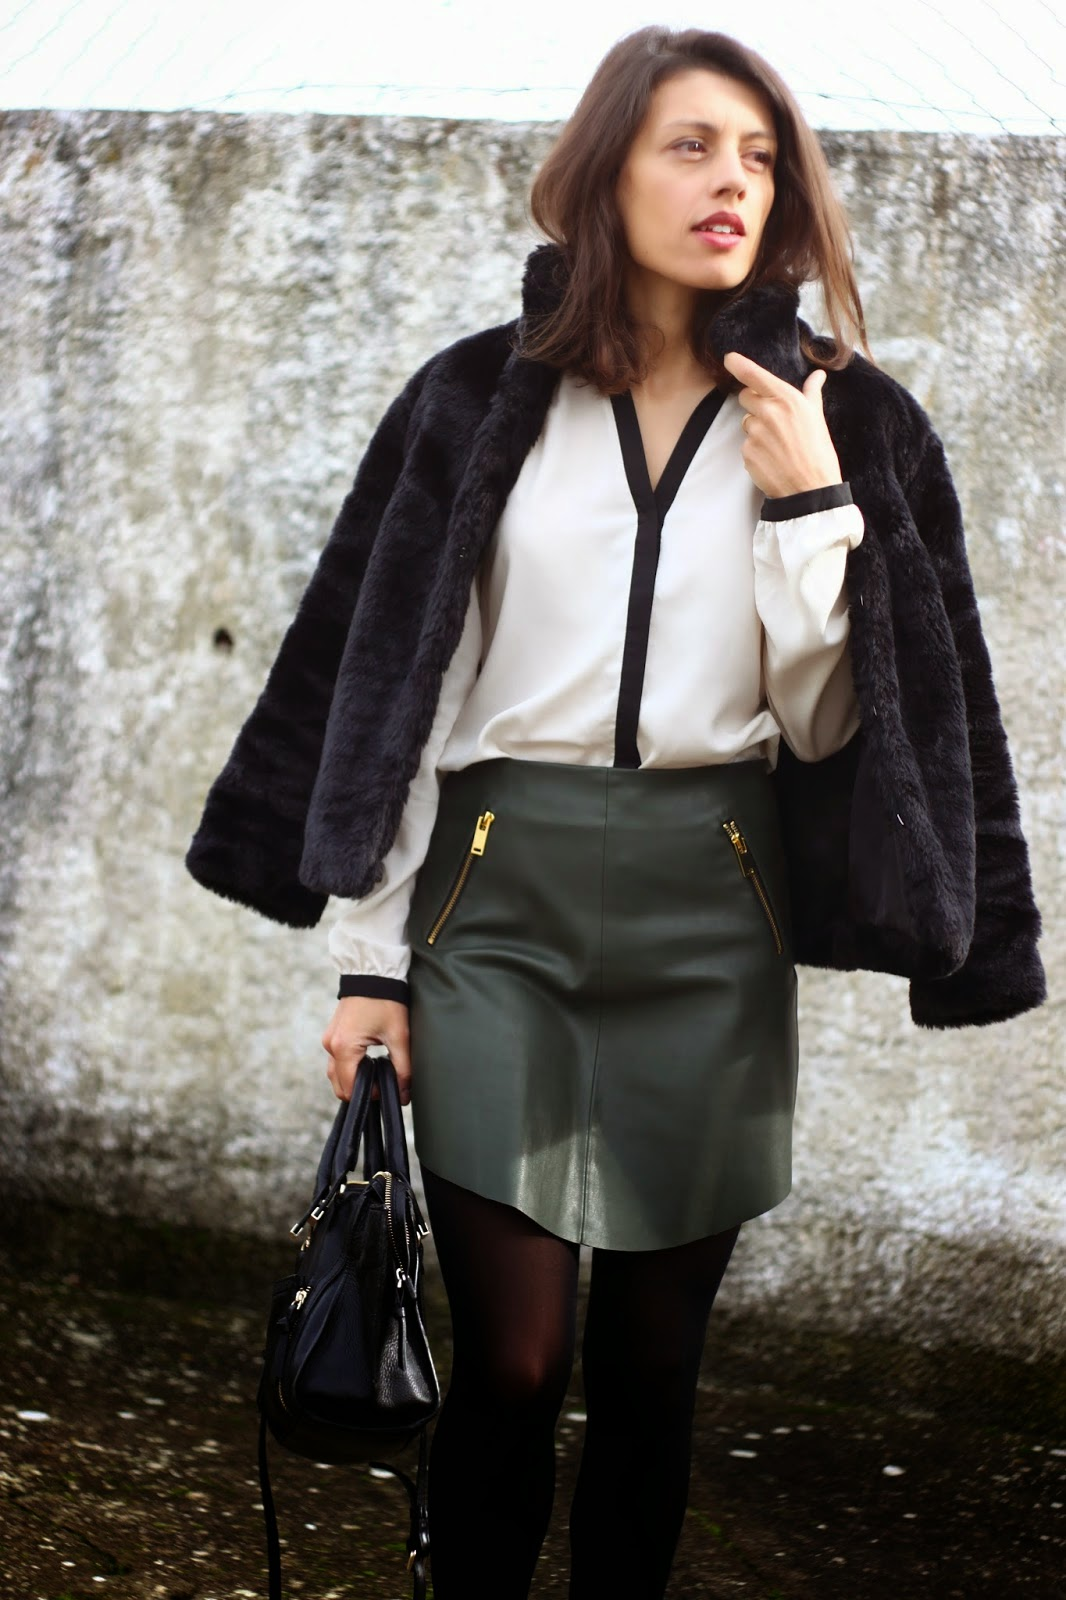 http://ilovefitametrica.blogspot.pt/2014/11/khaki-leather-skirt.html